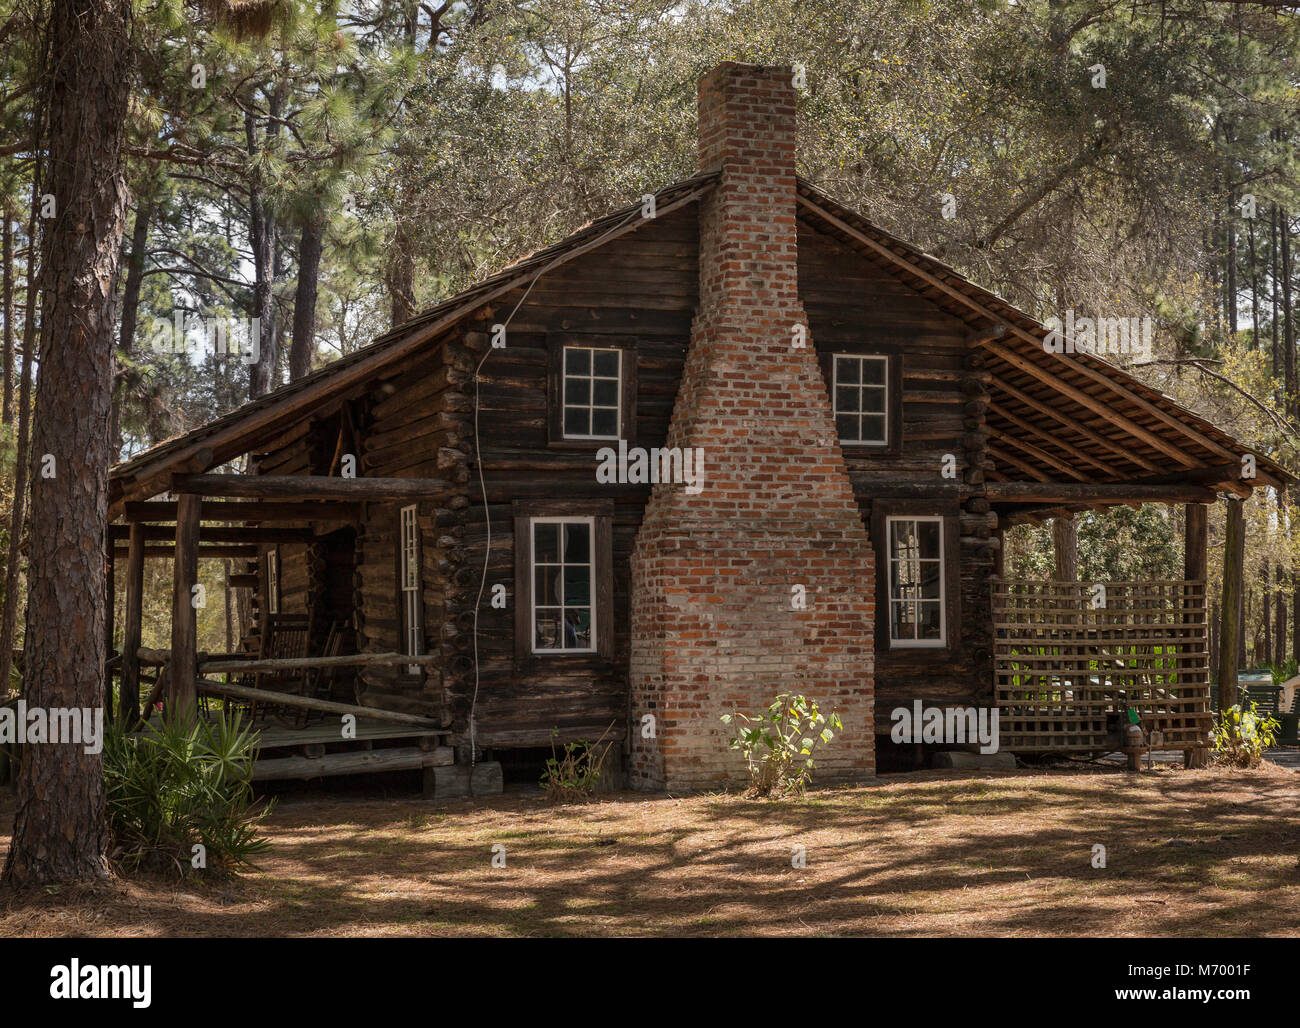 Old farm homestead relocated to heritage site at Sawgrass Lake Park, Florida - Stock Image